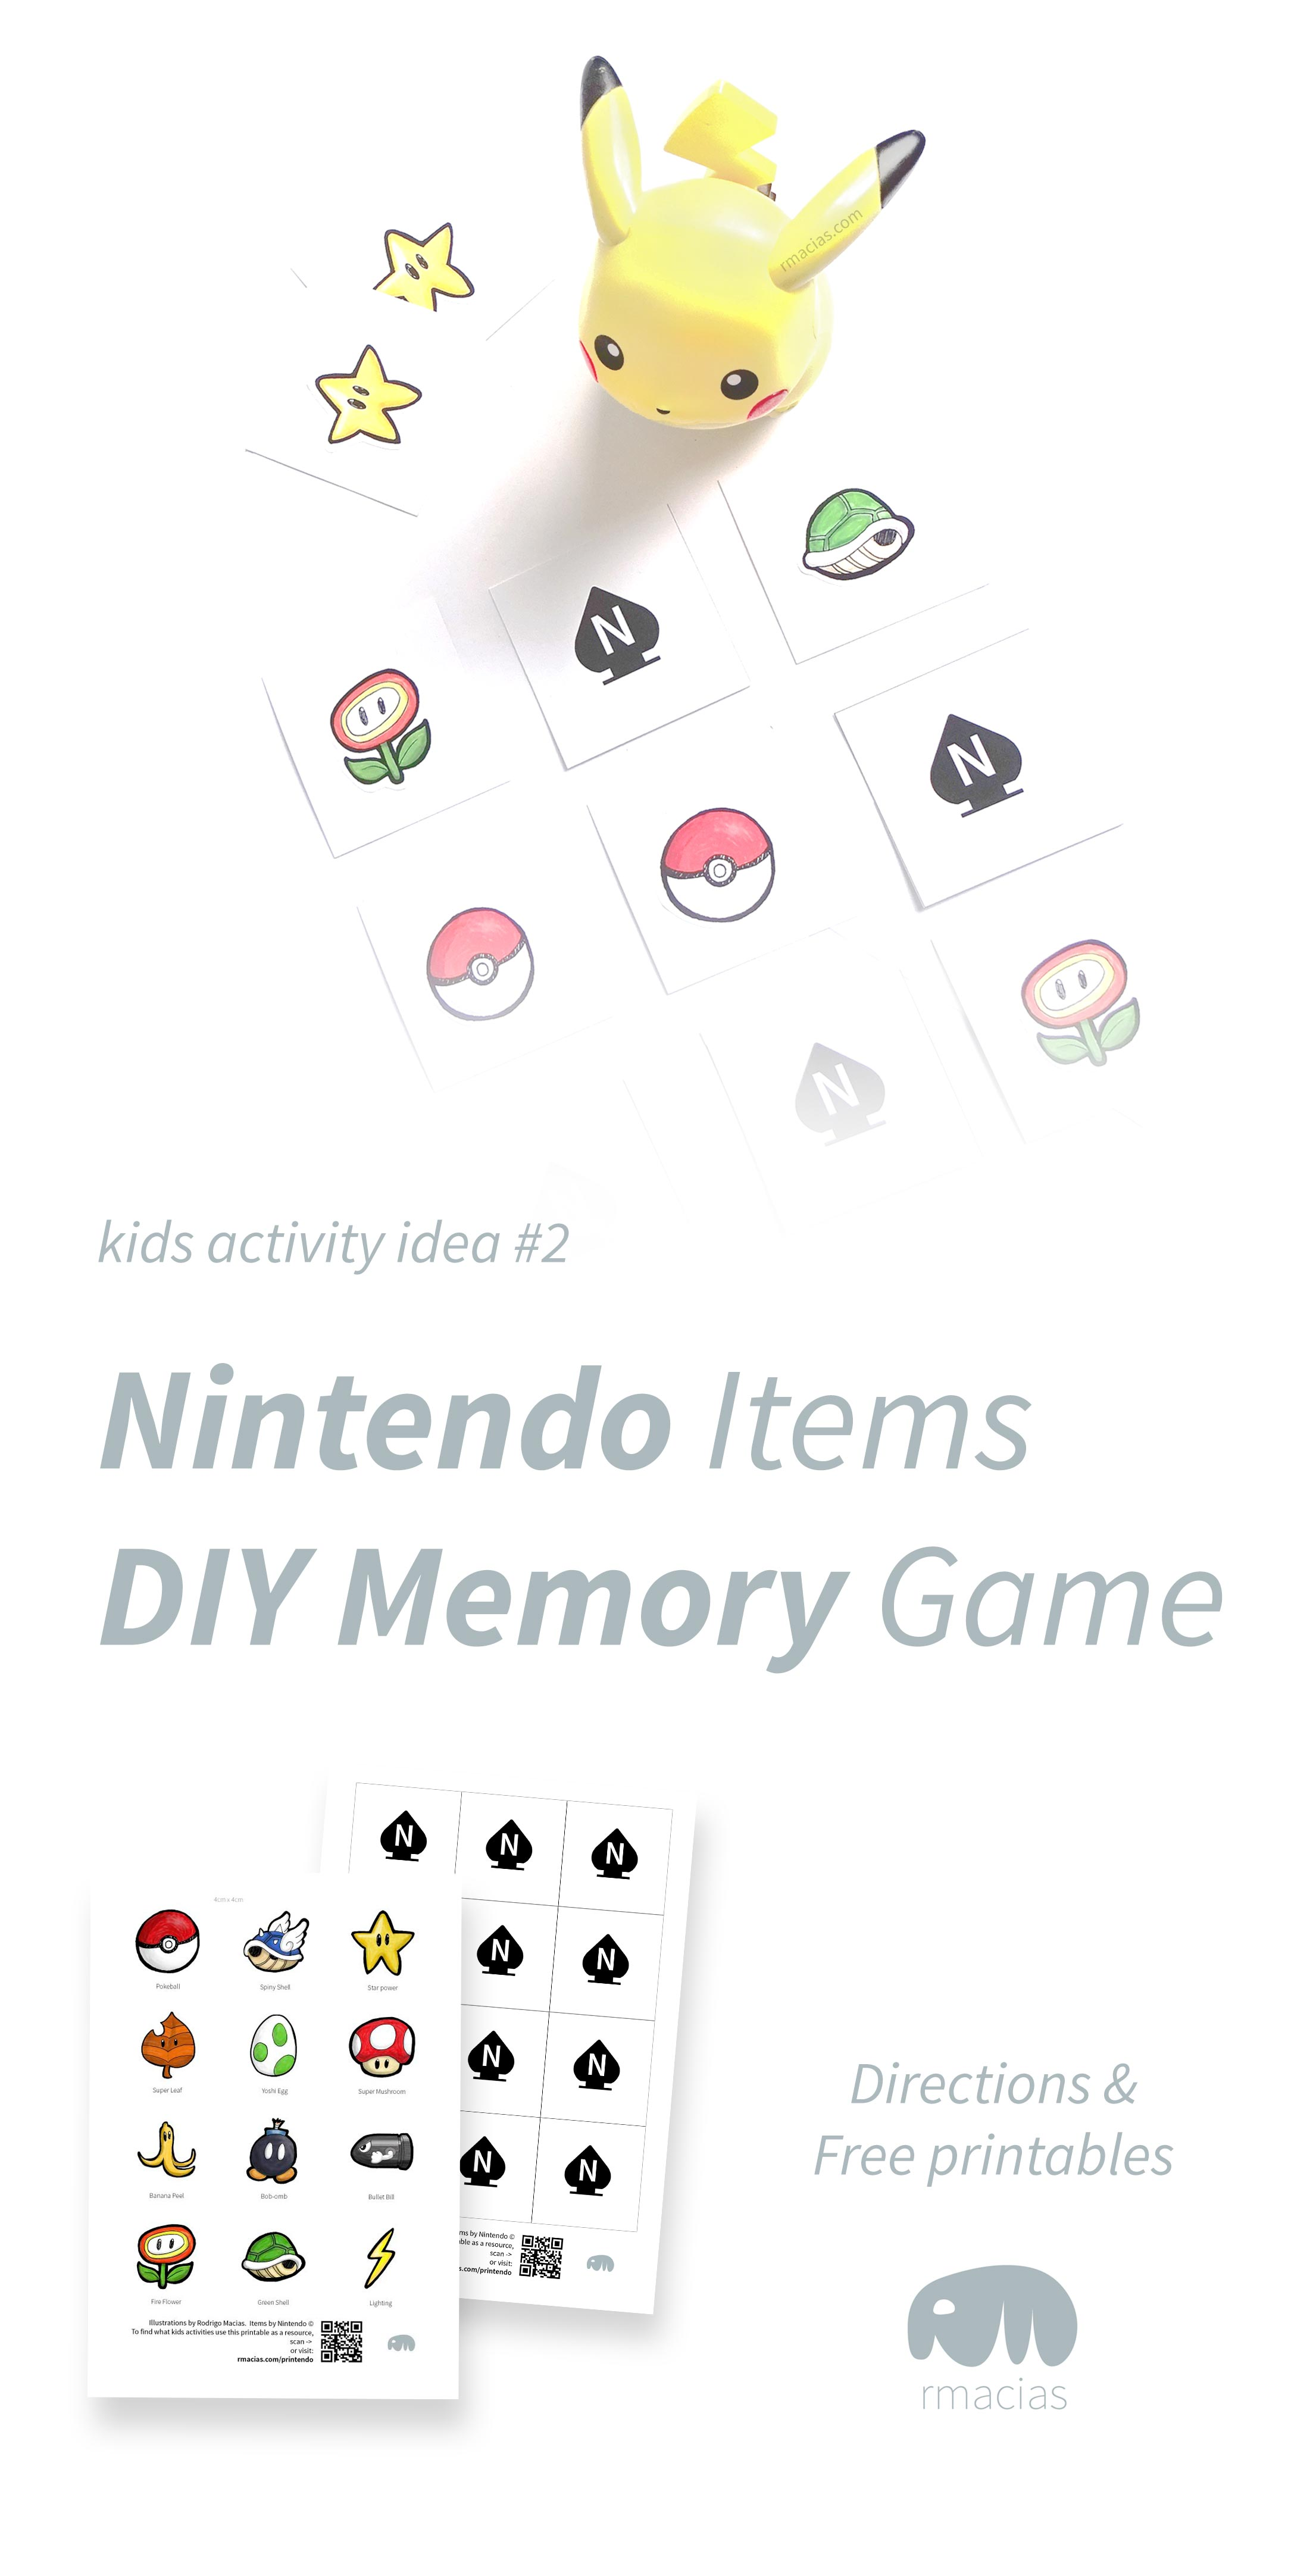 DIY Nintendo memory game with print-ready illustrations of hand-drawn items. Free printable and how-to directions. By Kids Activities Designer Rodrigo Macias.